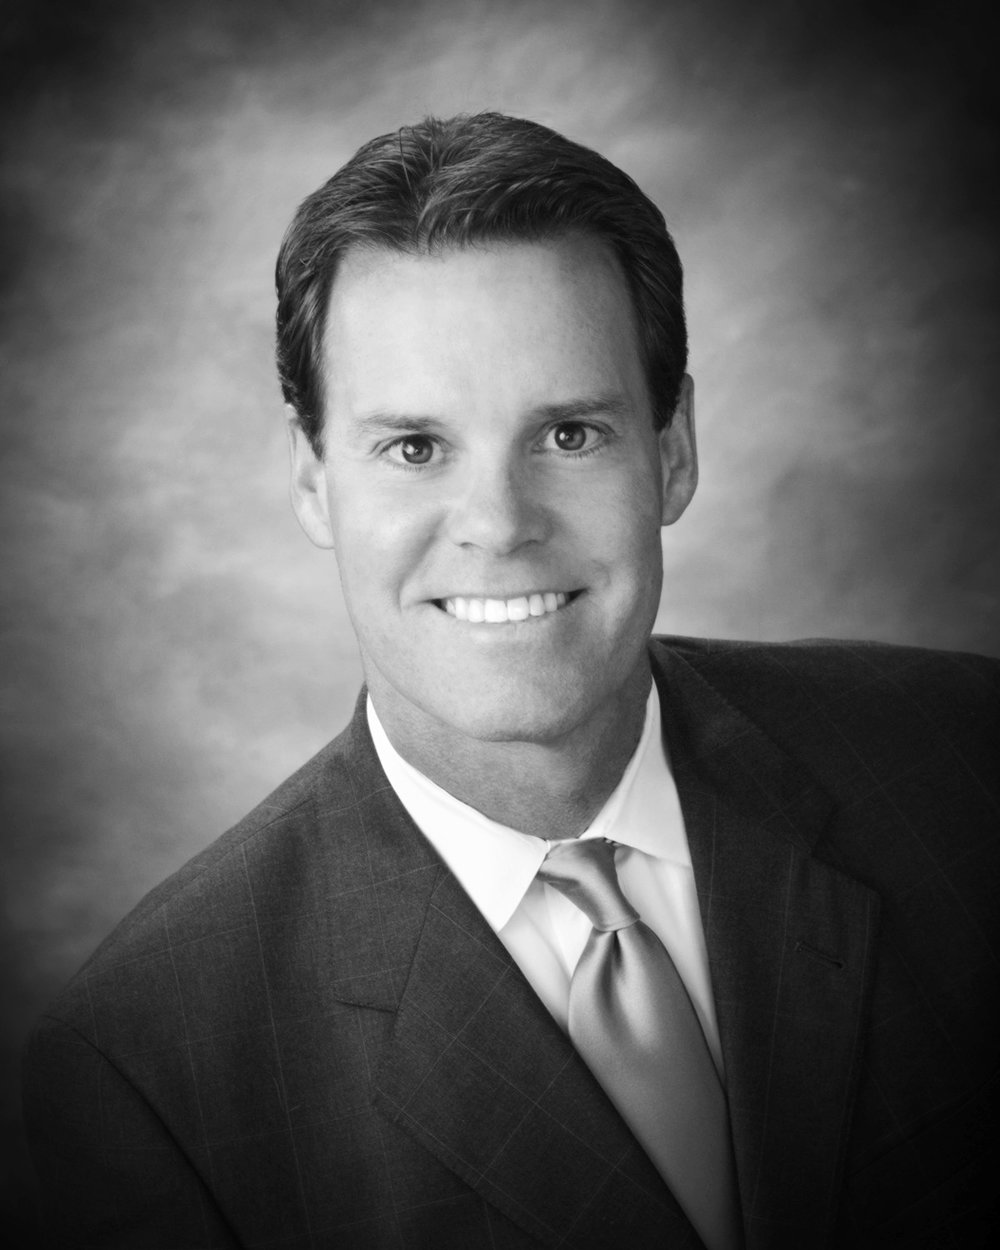 <p><strong>Patrick Lawler</strong>CEO at Youth Villages<a href=/pat-lawler>More →</a></p>